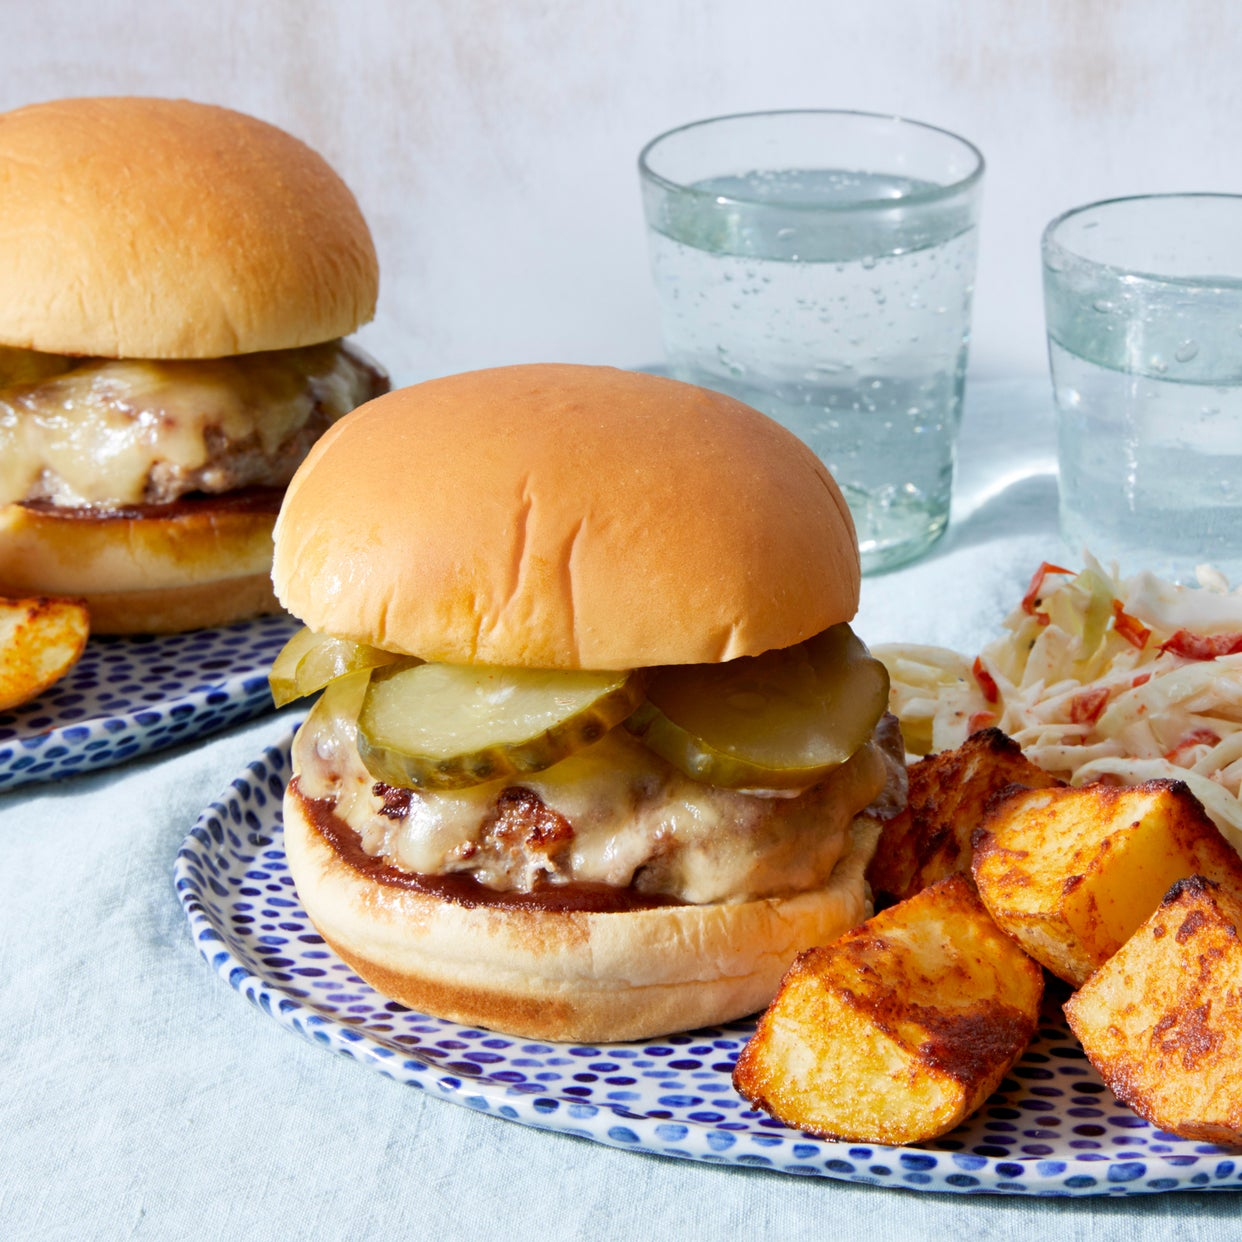 BBQ Pork Burgers with Pickled Pepper Coleslaw & Roasted Potatoes